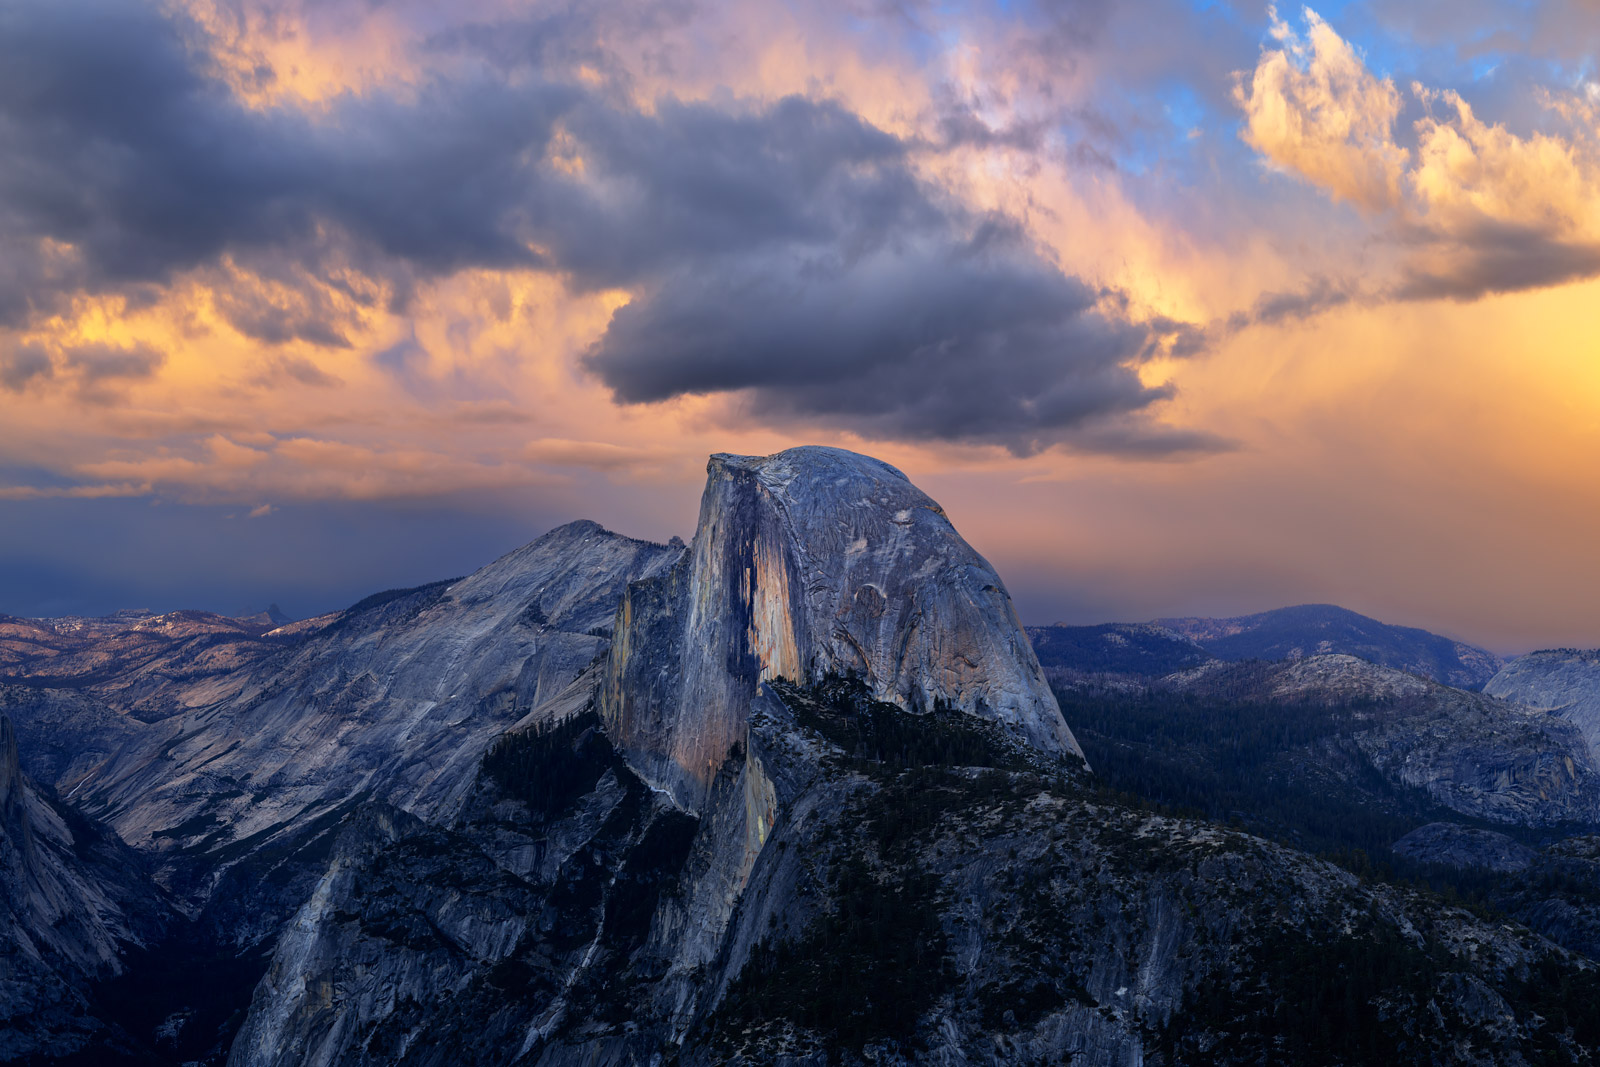 A Limited Edition, Fine Art photograph of Half Dome from Glacier Point just after sunset at Yosemite National Park in California...